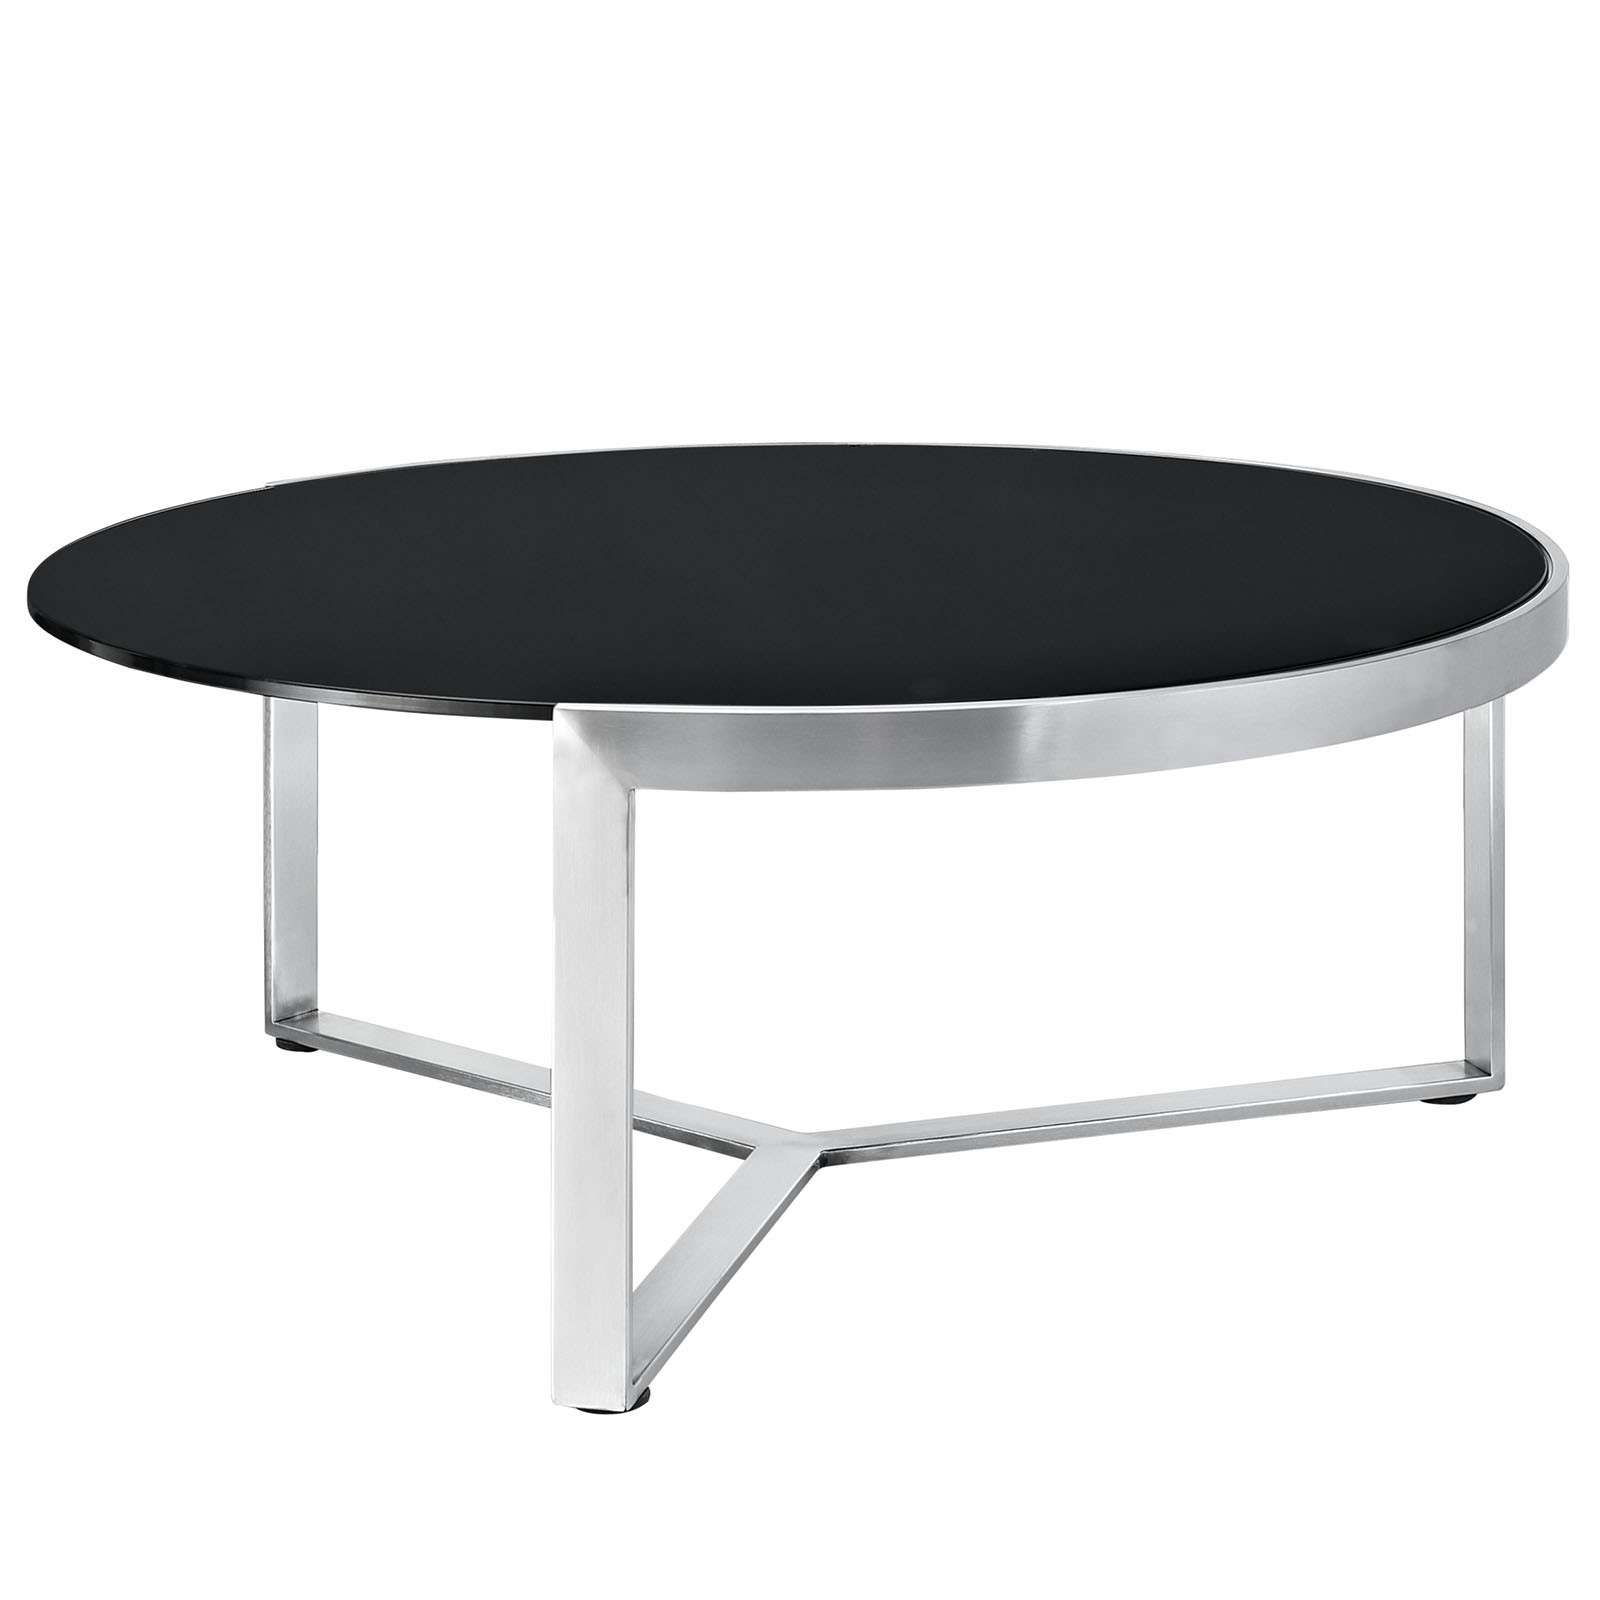 Stylish Modern Round Coffee Table With Slim Wooden Top Painted Inside Popular Round Steel Coffee Tables (View 17 of 20)